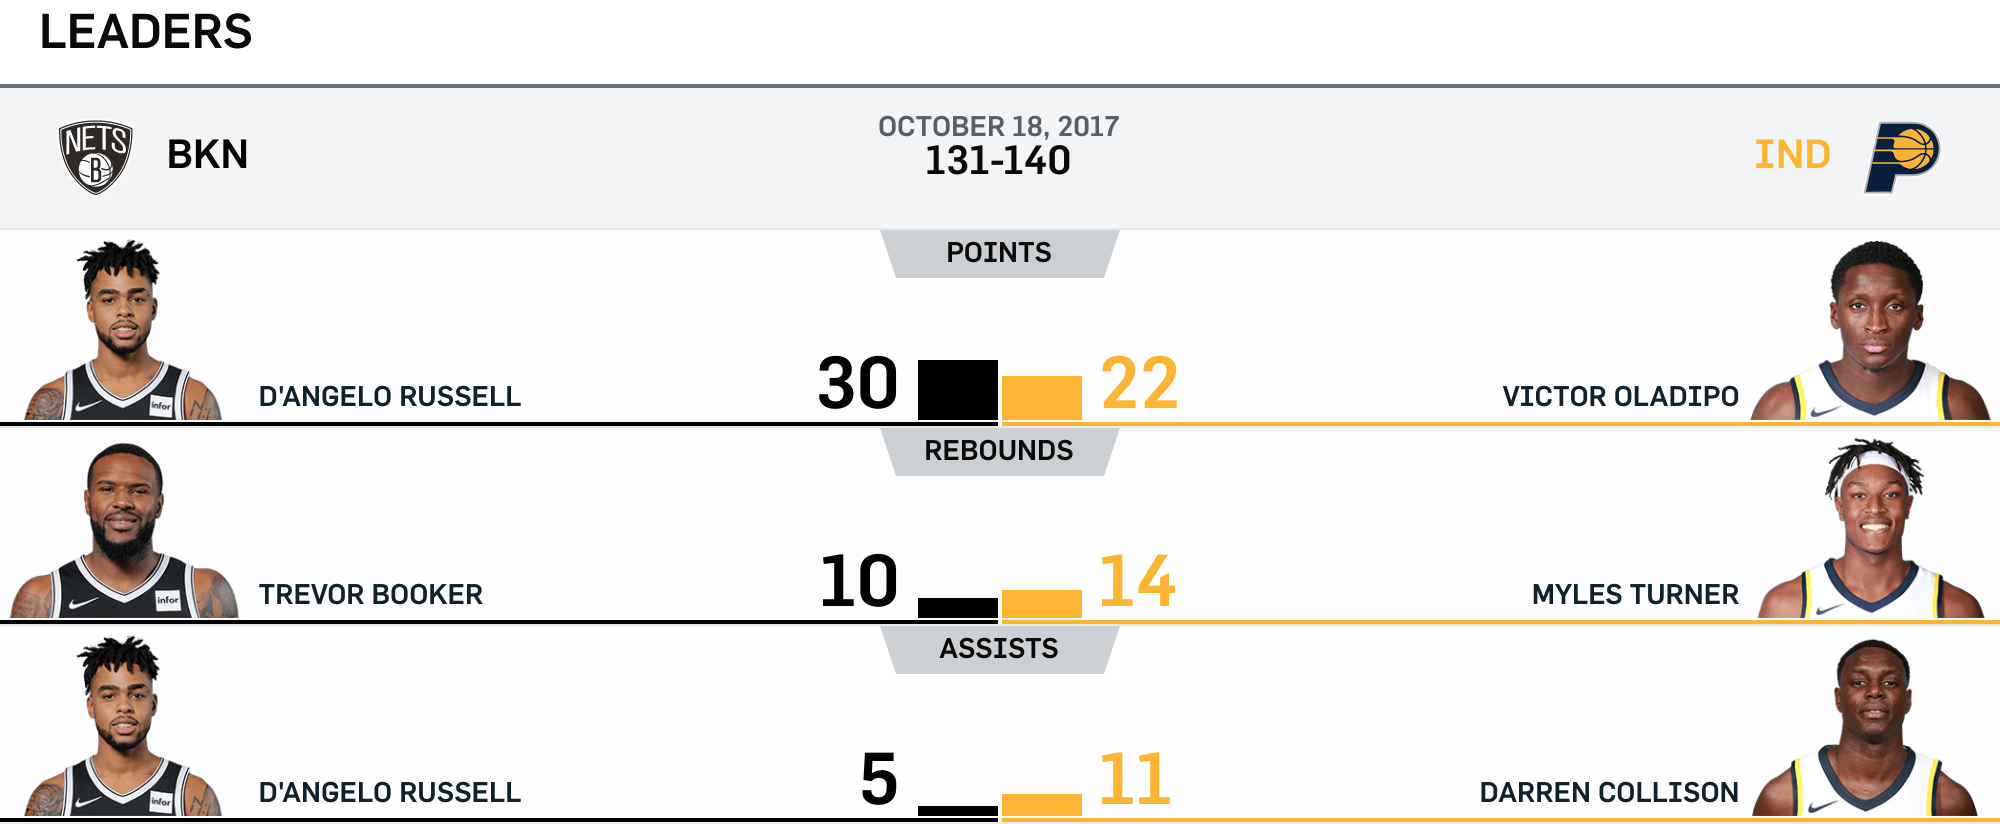 Nets at Pacers 10-18-17 Leaders